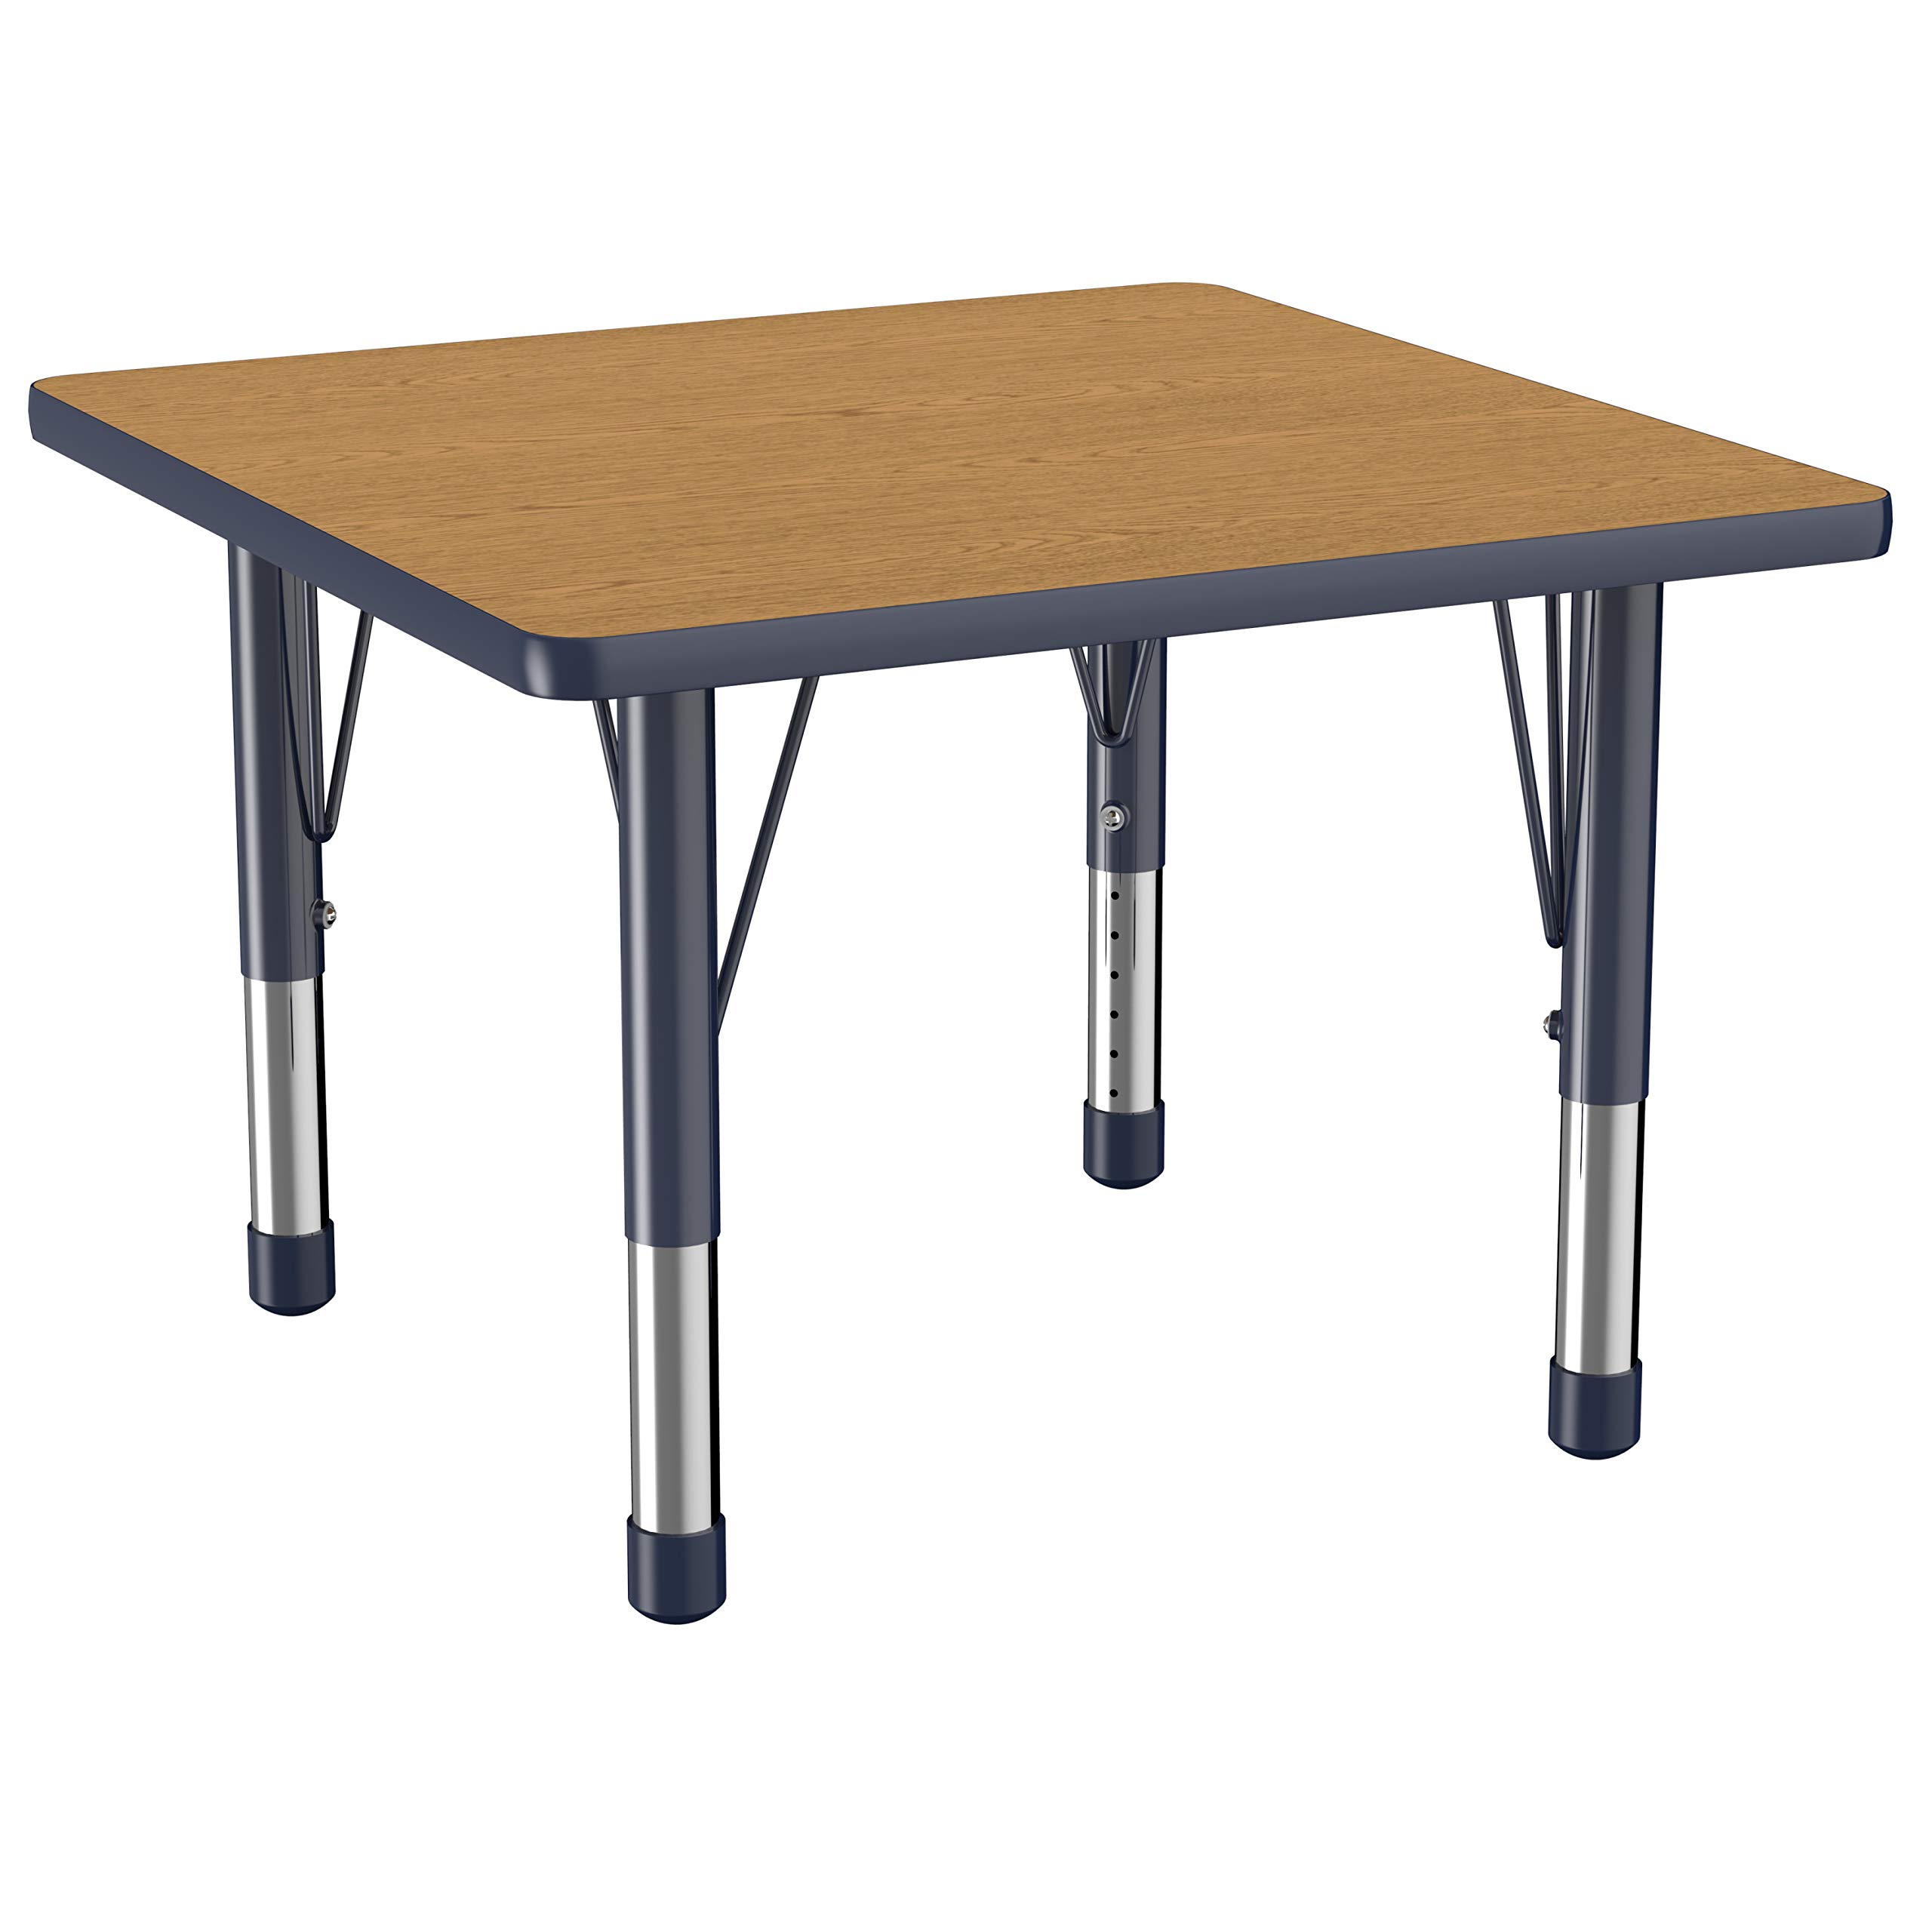 FDP Square Activity School and Classroom Kids Table (30 x 30 inch), Toddler Legs, Adjustable Height 15-24 inches - Oak Top and Navy Edge by Factory Direct Partners